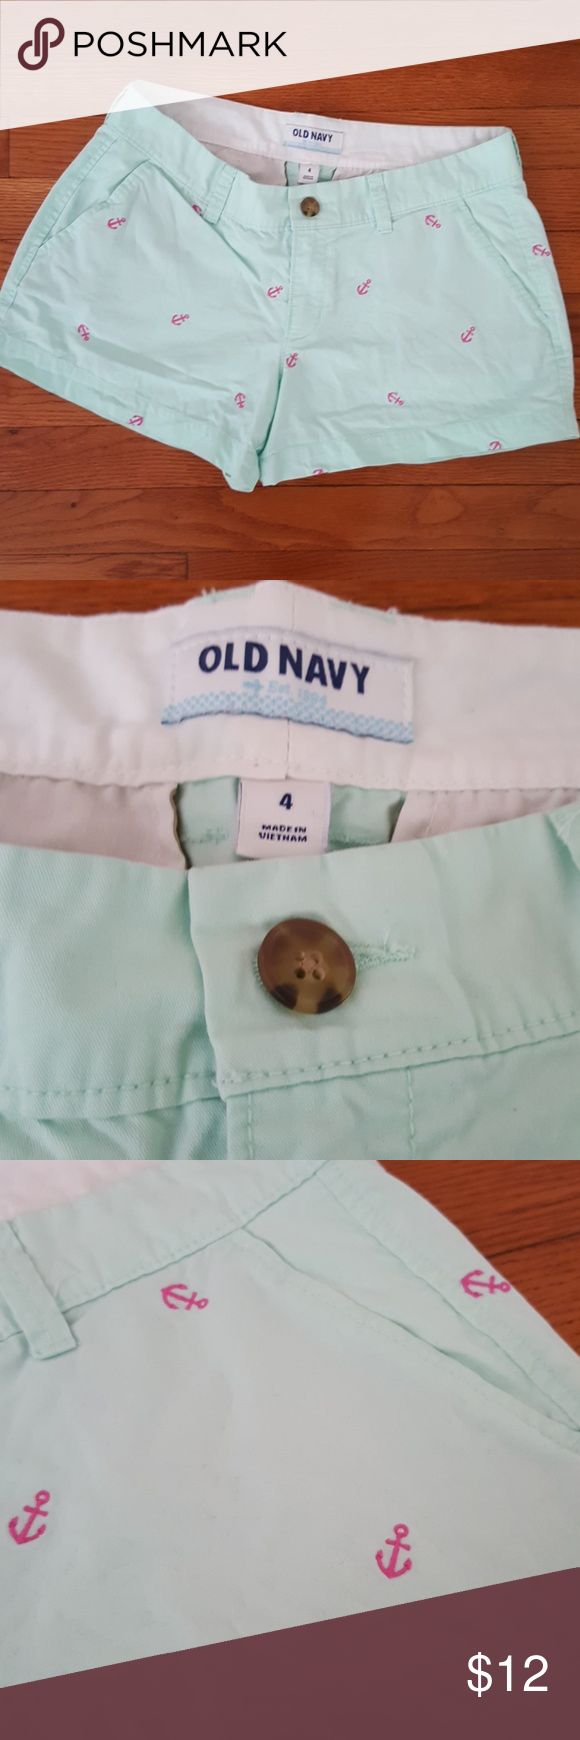 Mint Green Anchor Shorts Mint green shorts with hot pink anchors. Pockets in the front and back. Excellent condition. Old Navy Shorts